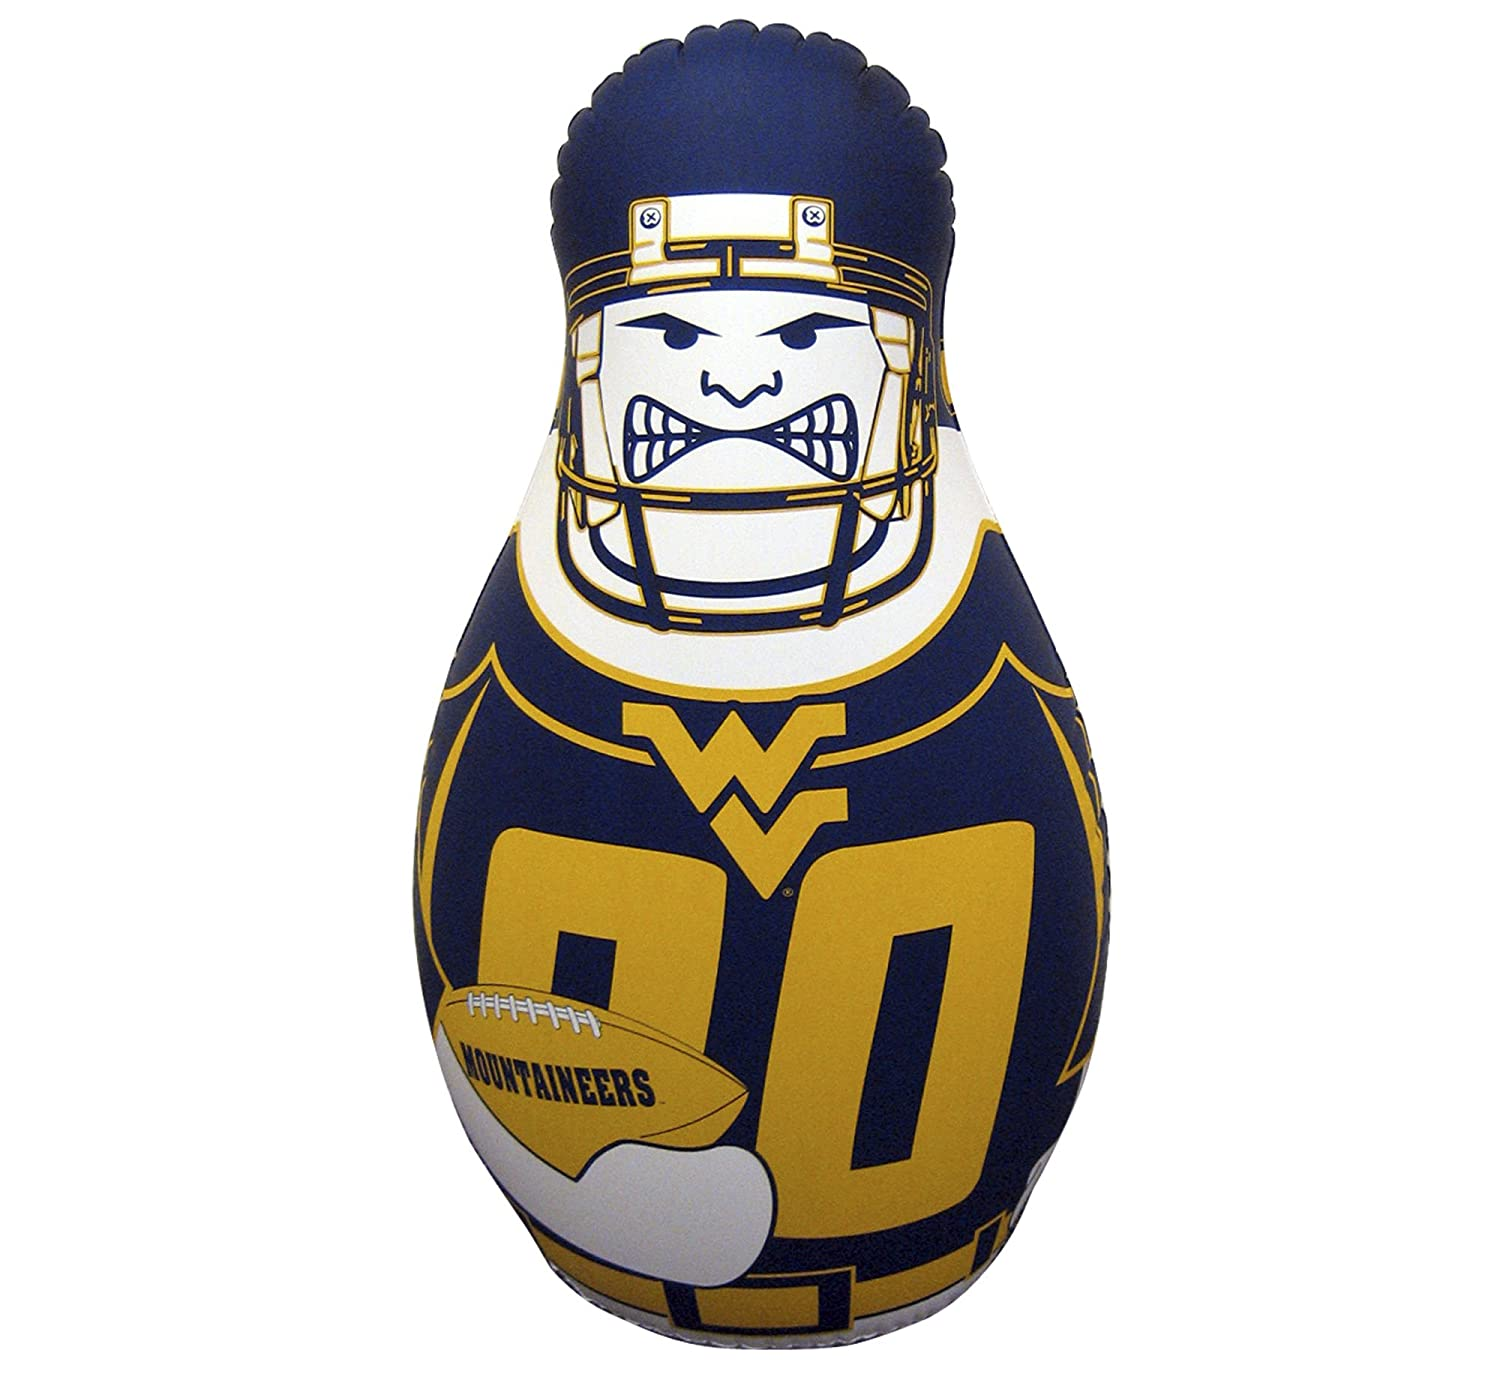 40-Inch Tall Fremont Die NCAA Tackle Buddy Inflatable Punching Bag